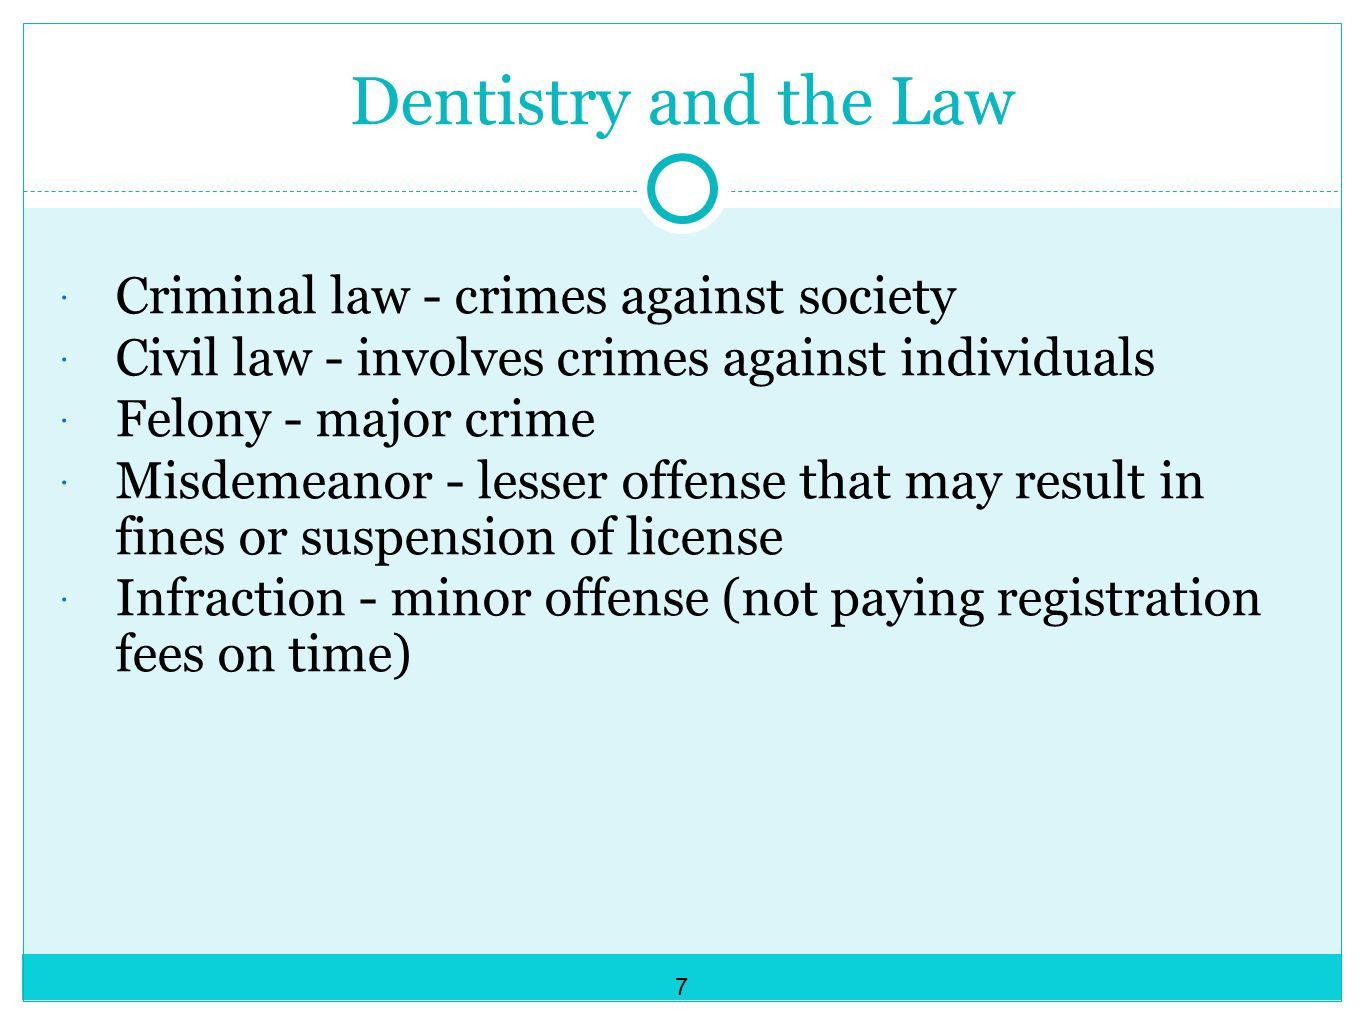 Dentistry and the Law  Criminal law - crimes against society  Civil law - involves crimes against individuals  Felony - major crime  Misdemeanor - lesser offense that may result in fines or suspension of license  Infraction - minor offense (not paying registration fees on time) 7